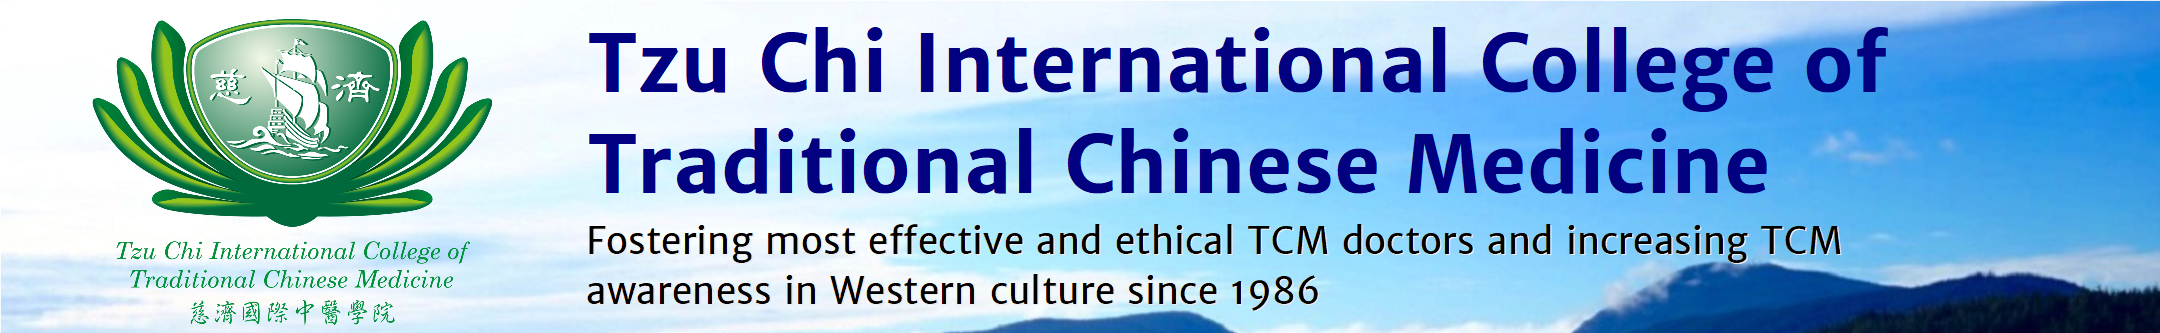 Tzu Chi International College of TCM - since 1986